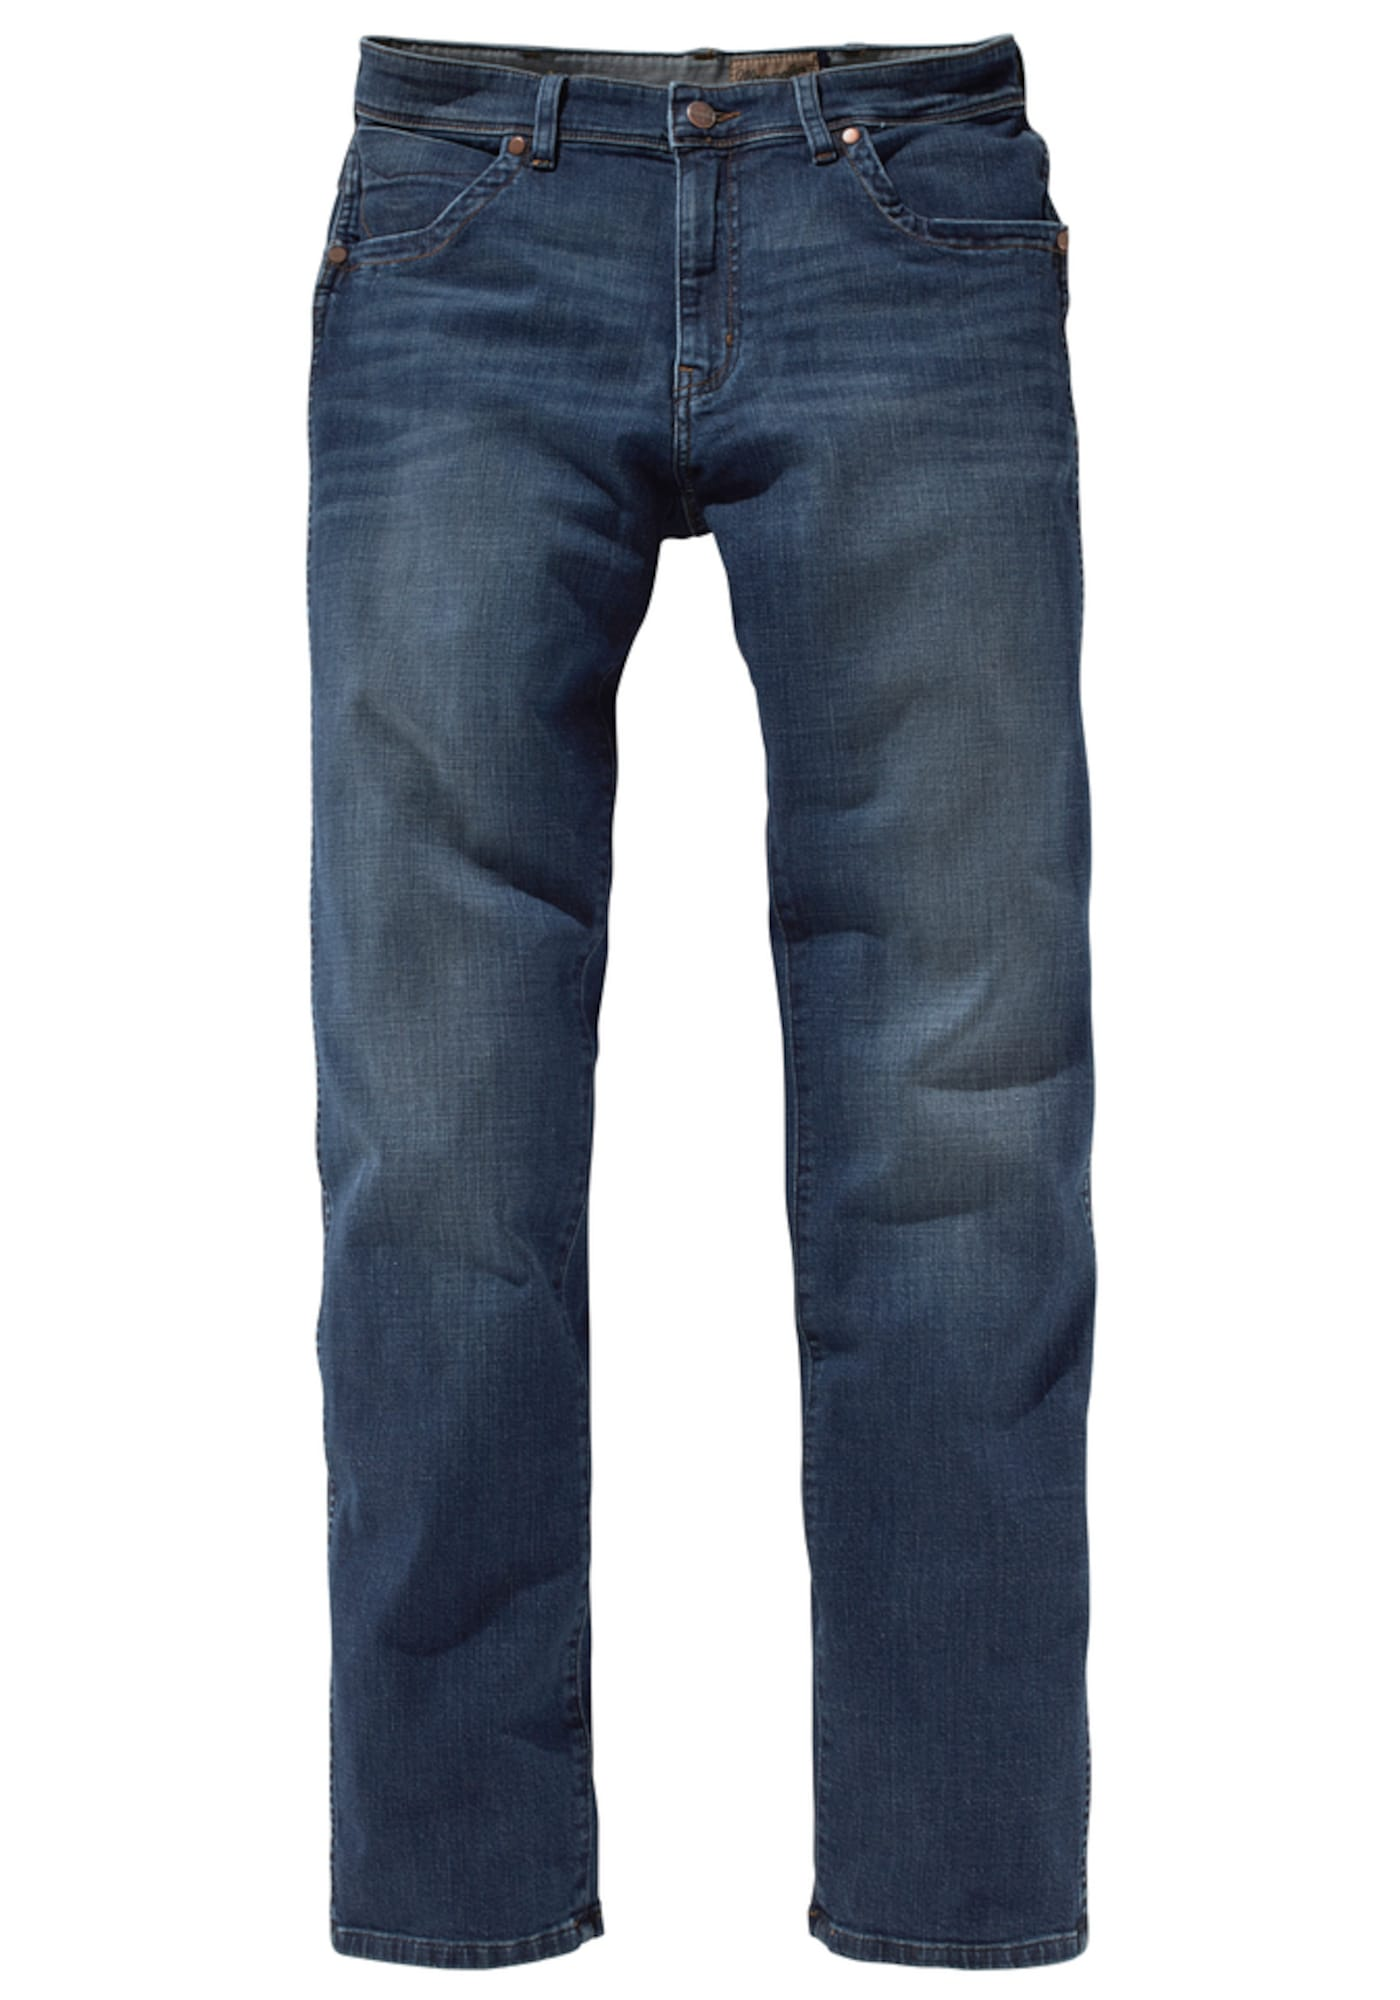 WRANGLER Heren Jeans Texas Stretch blauw denim